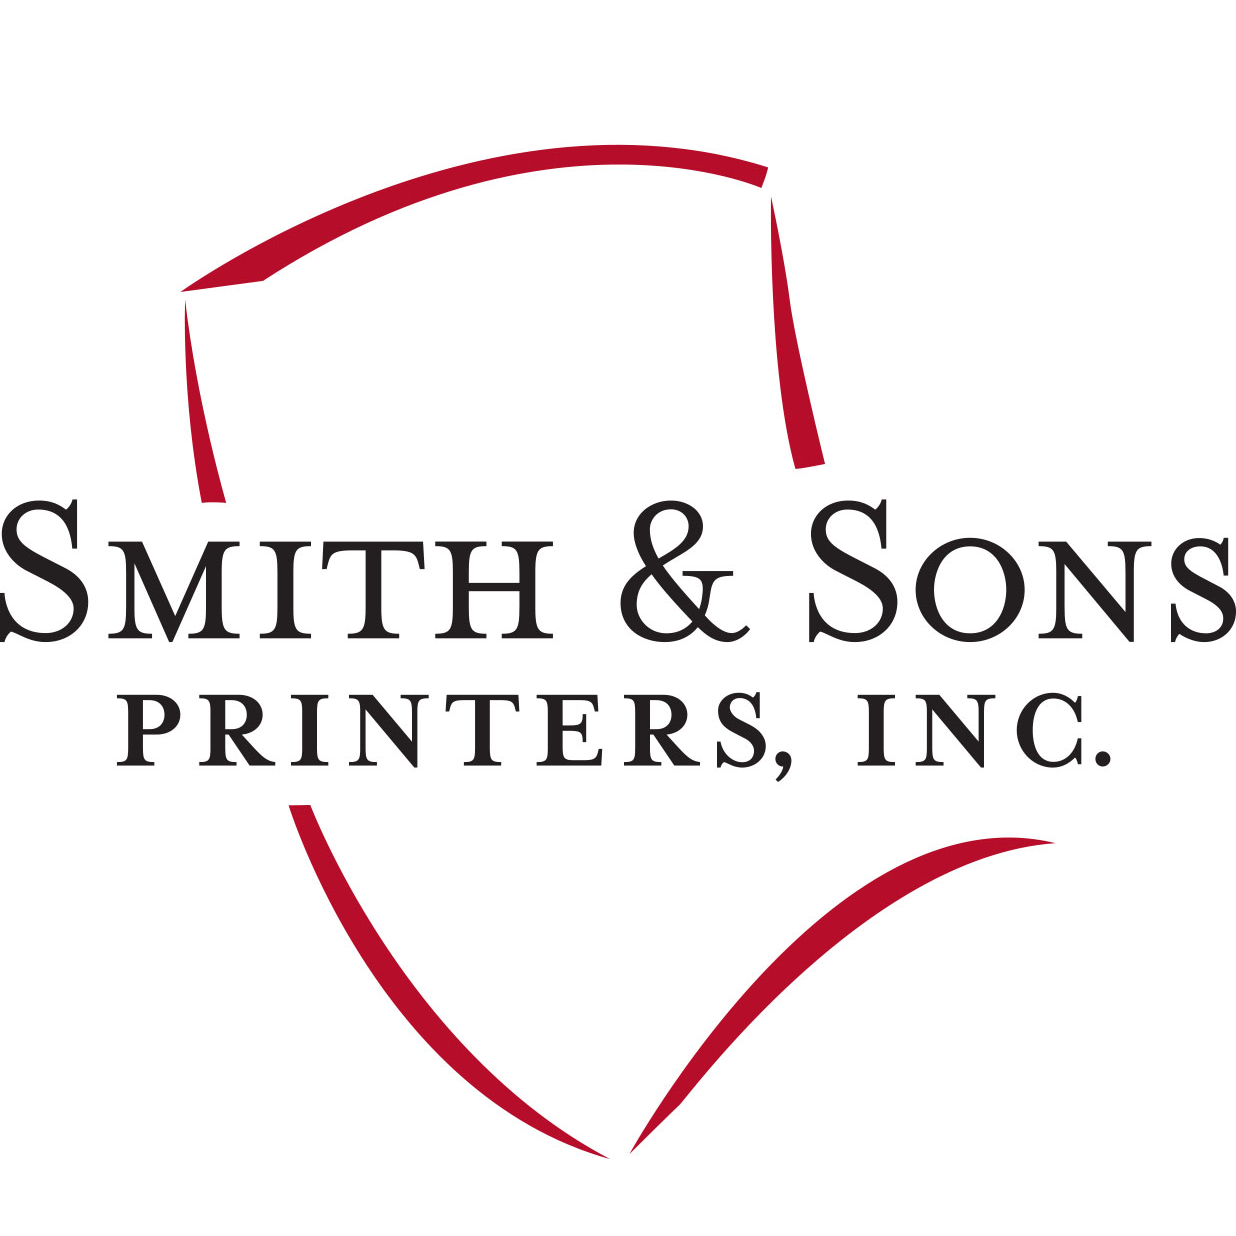 Smith & Sons Printers Inc.